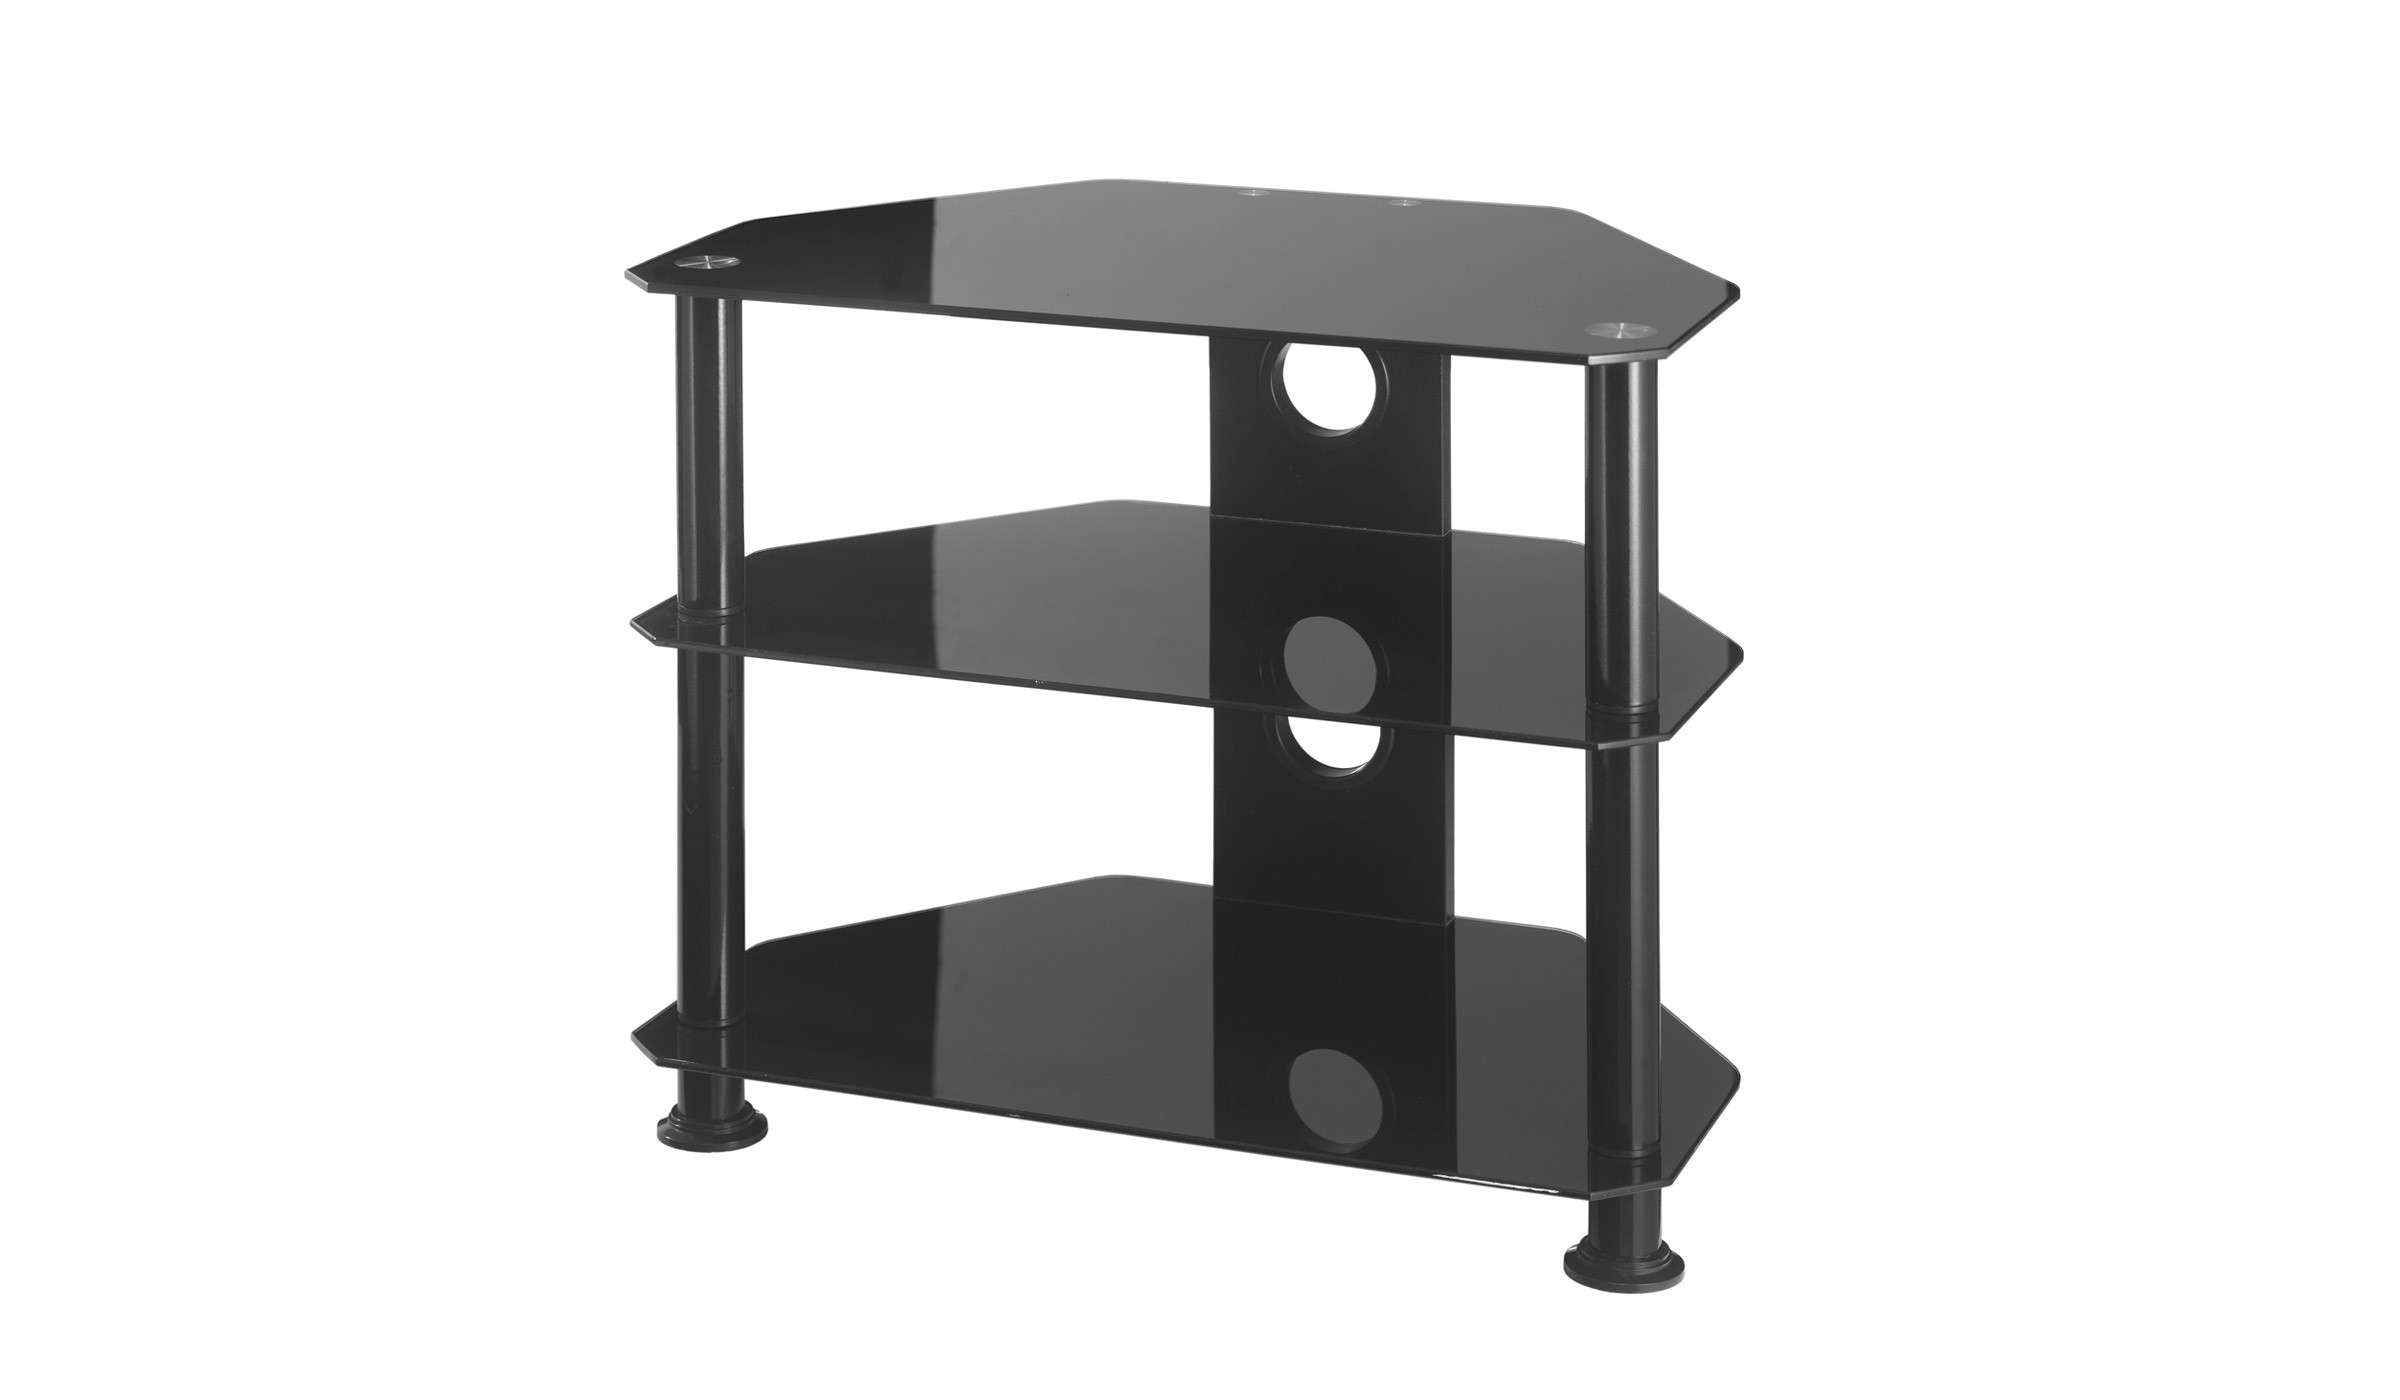 Small Glass Corner Tv Stand Up To 26 Inch Tv | Mmt Db600 With Regard To White Small Corner Tv Stands (View 12 of 15)